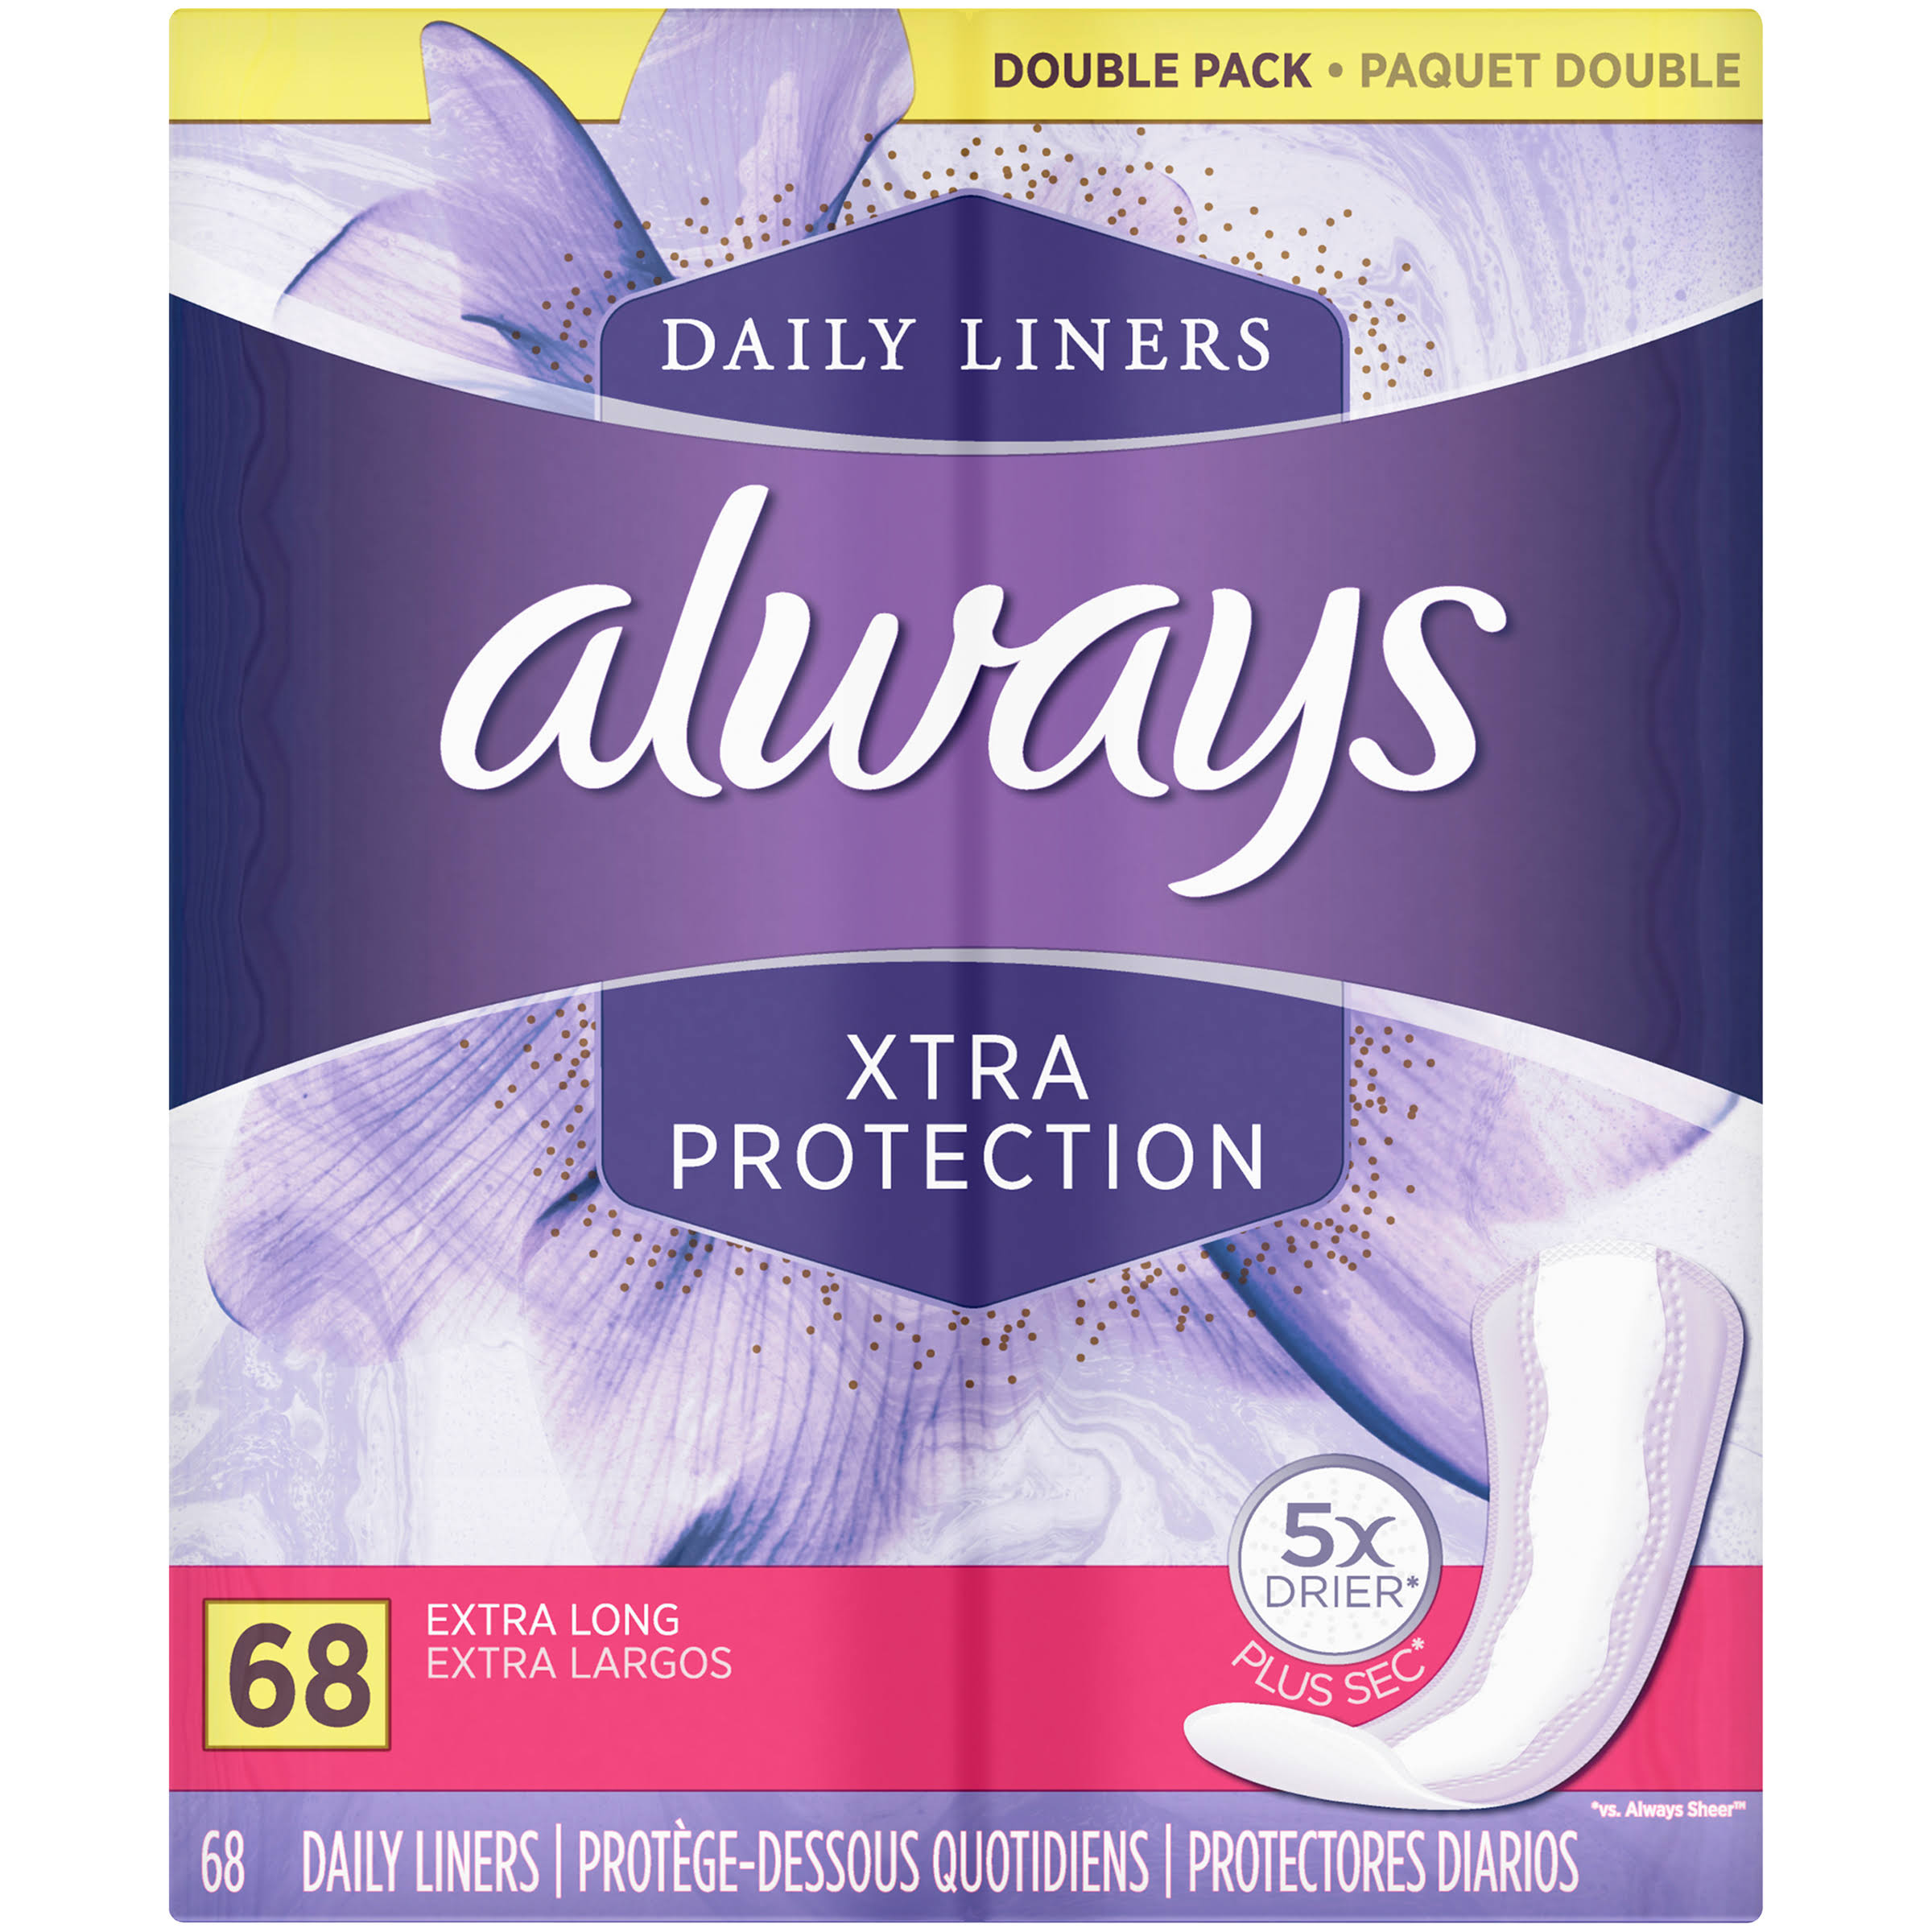 Always Dailies Xtra Protection Extra Long Liners - Double Pack, 68 Pack